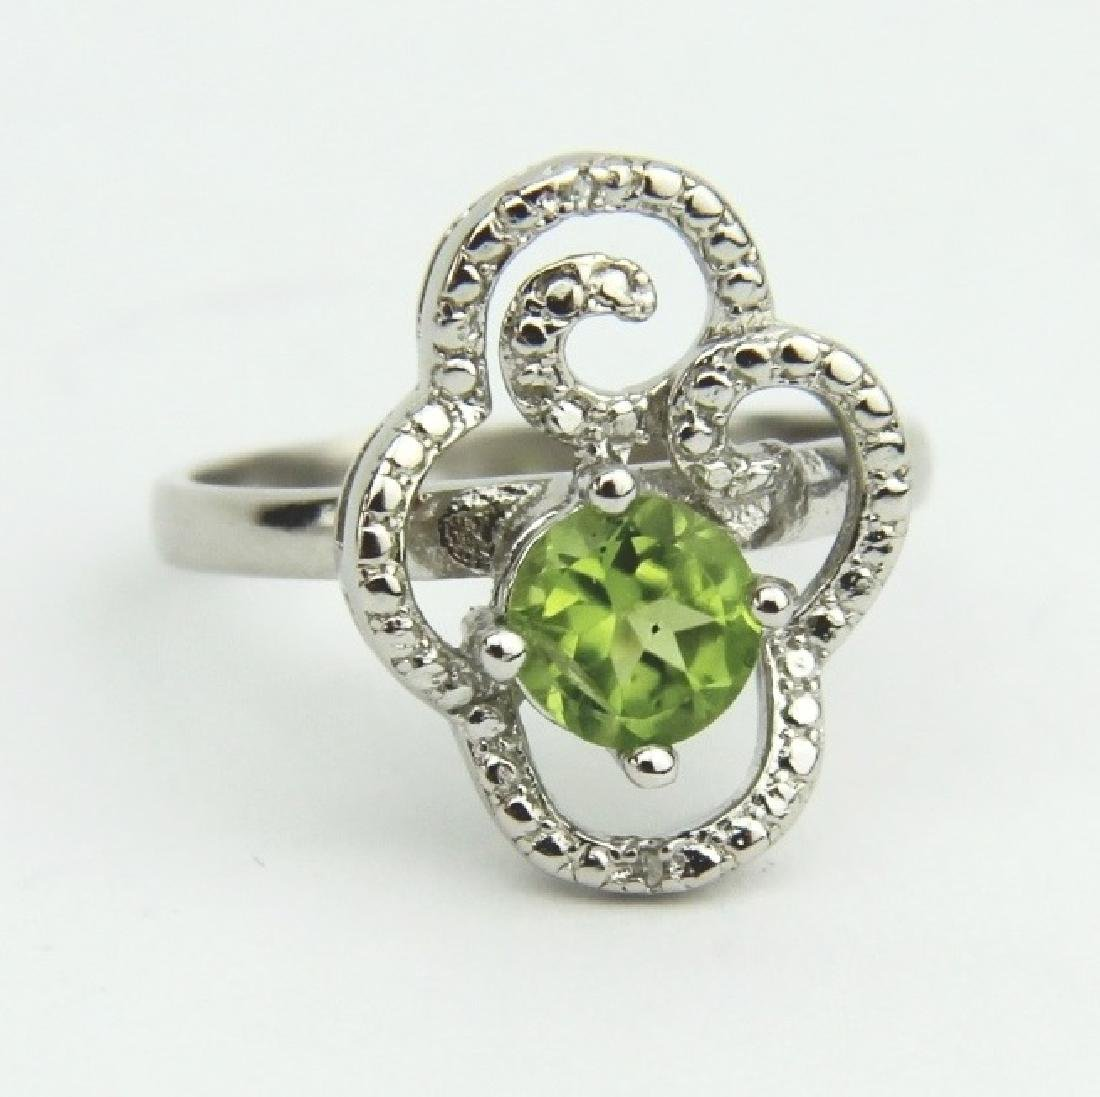 GREEN PERIDOT RING, SIZE 7